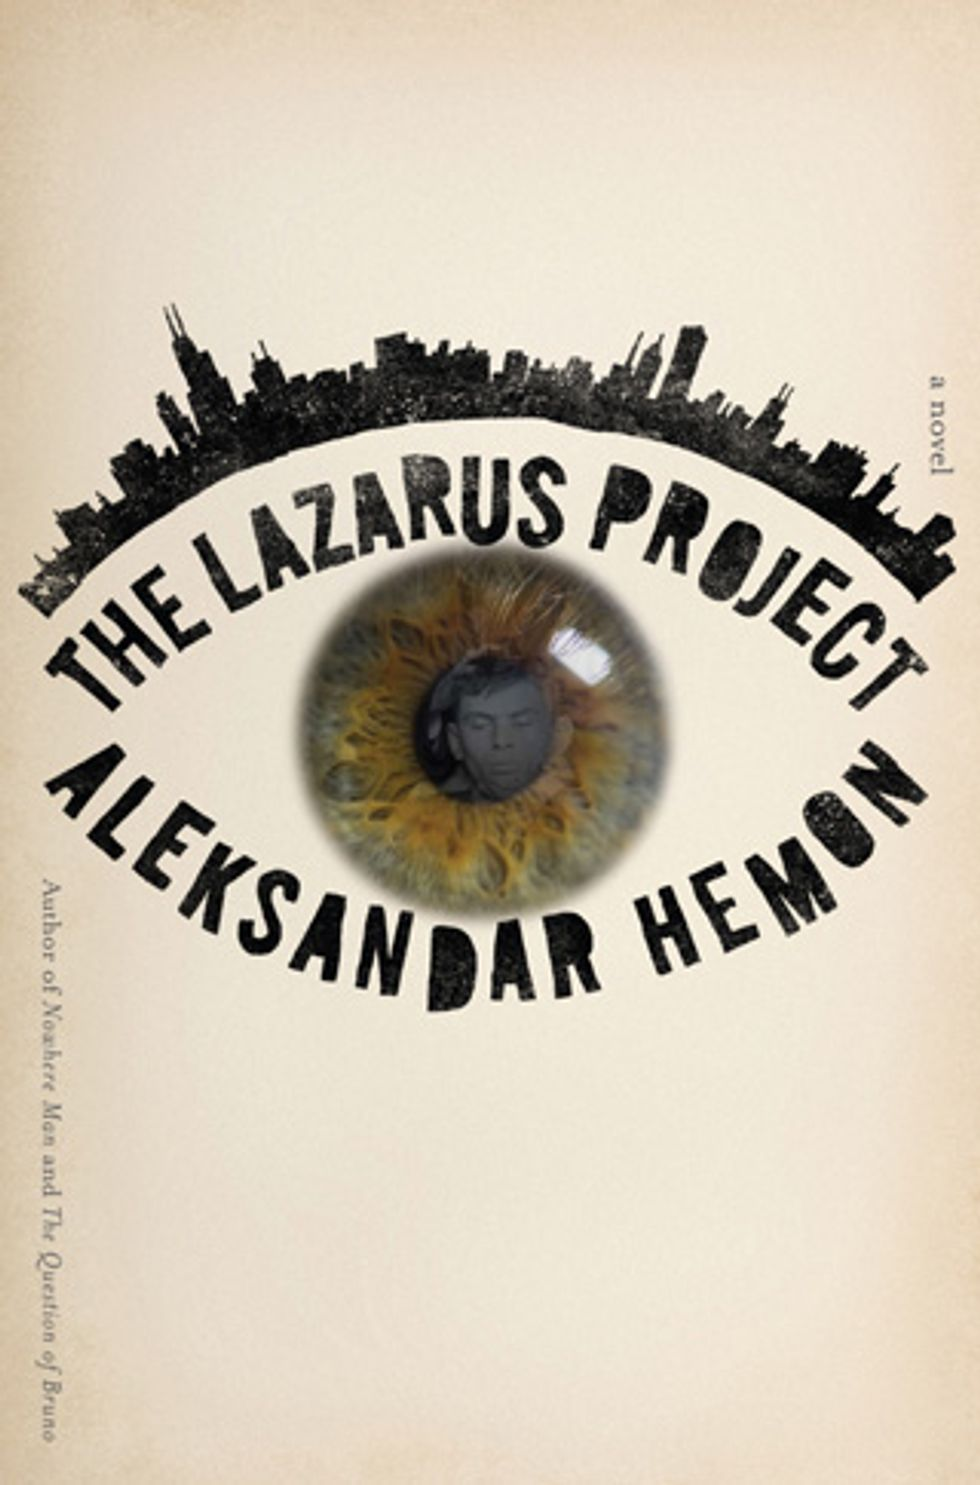 Books on PAPERMAG: The Lazarus Project and Balthrop, Alabama's Reading List